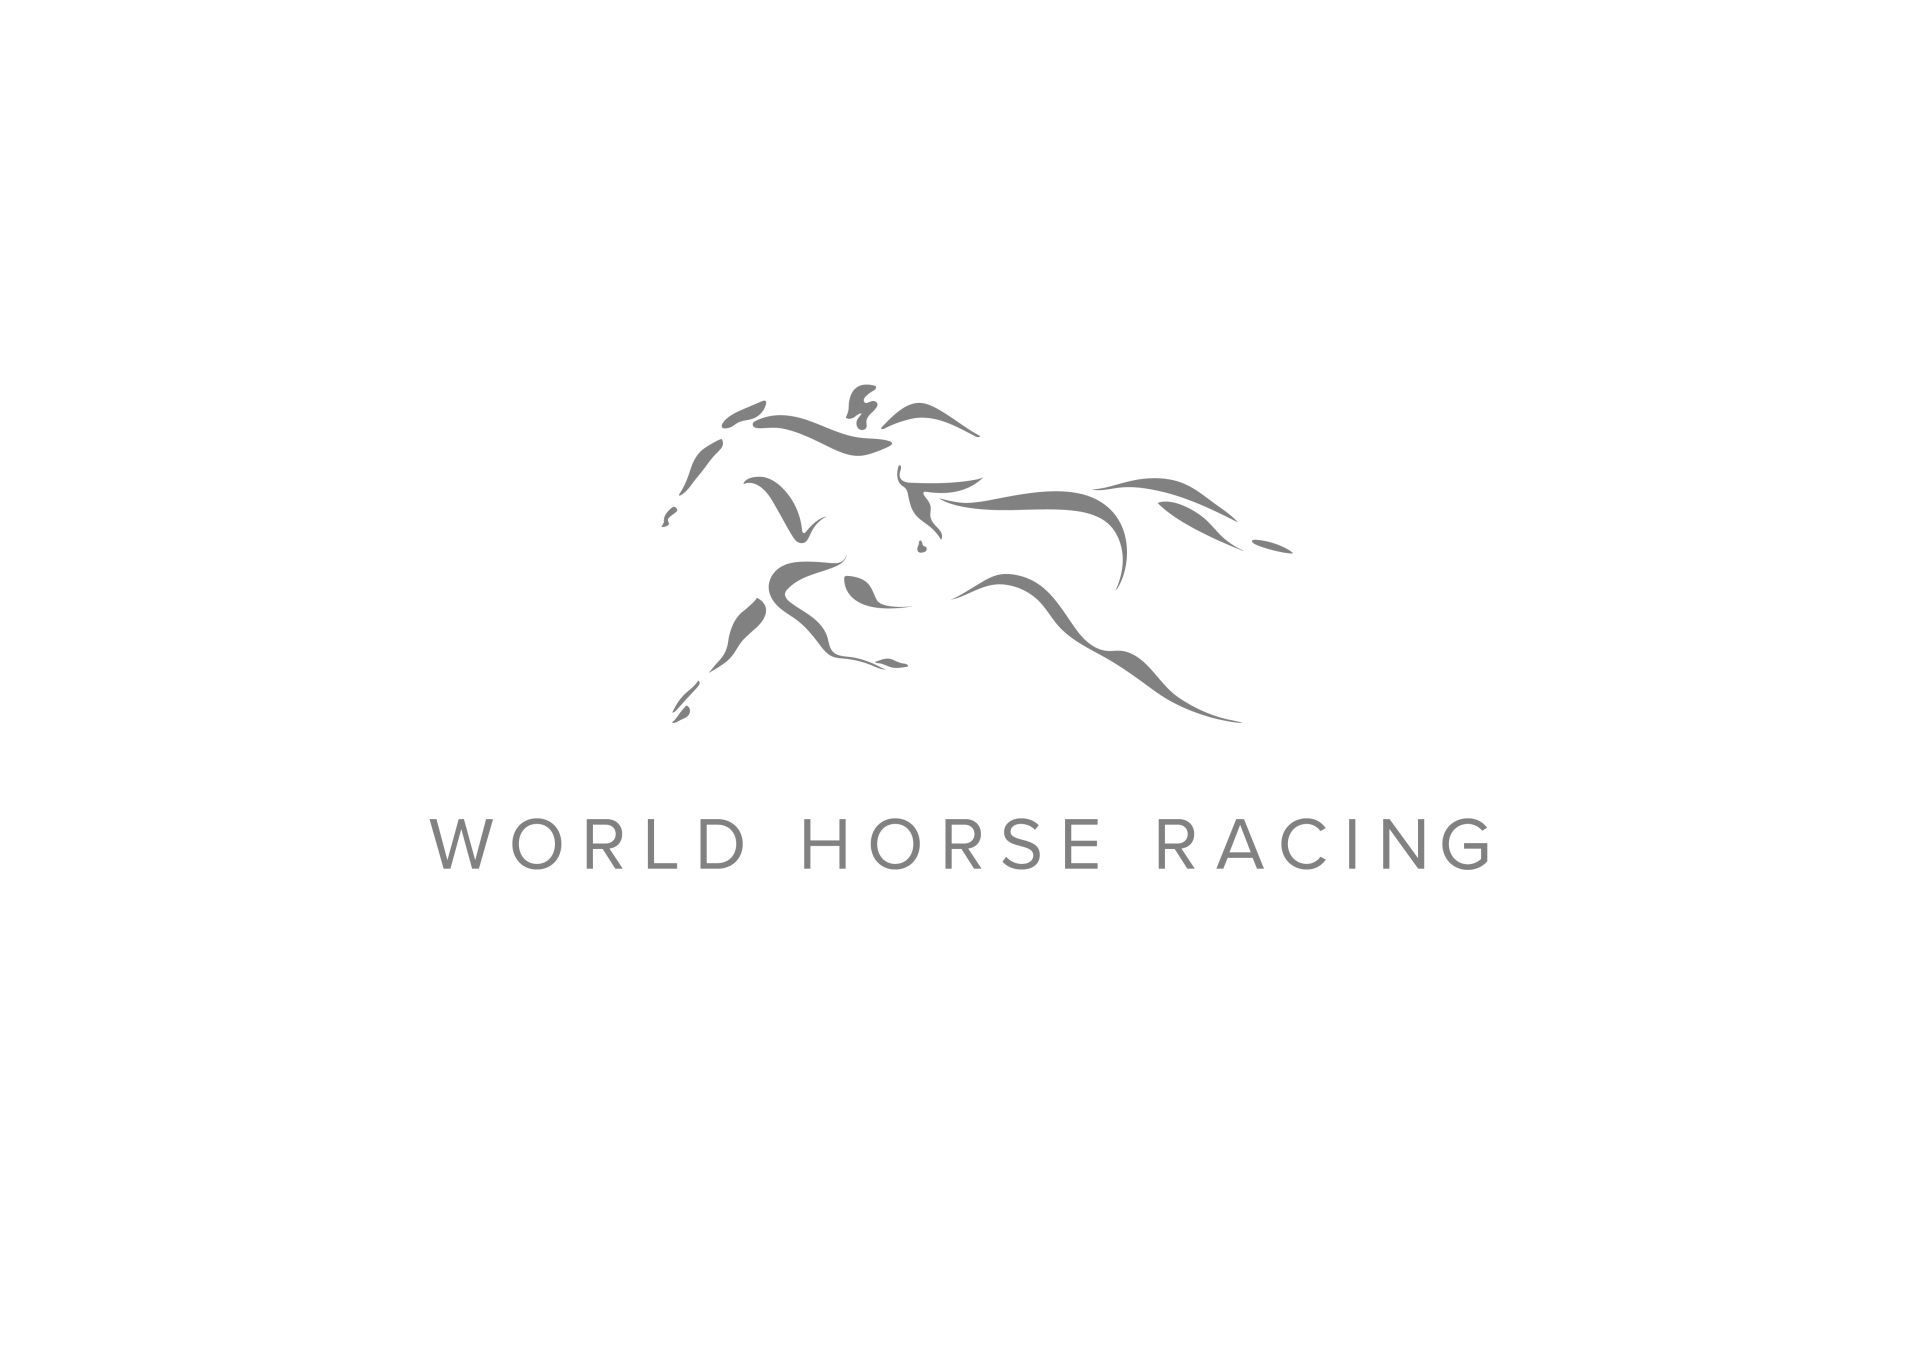 World Horse Racing